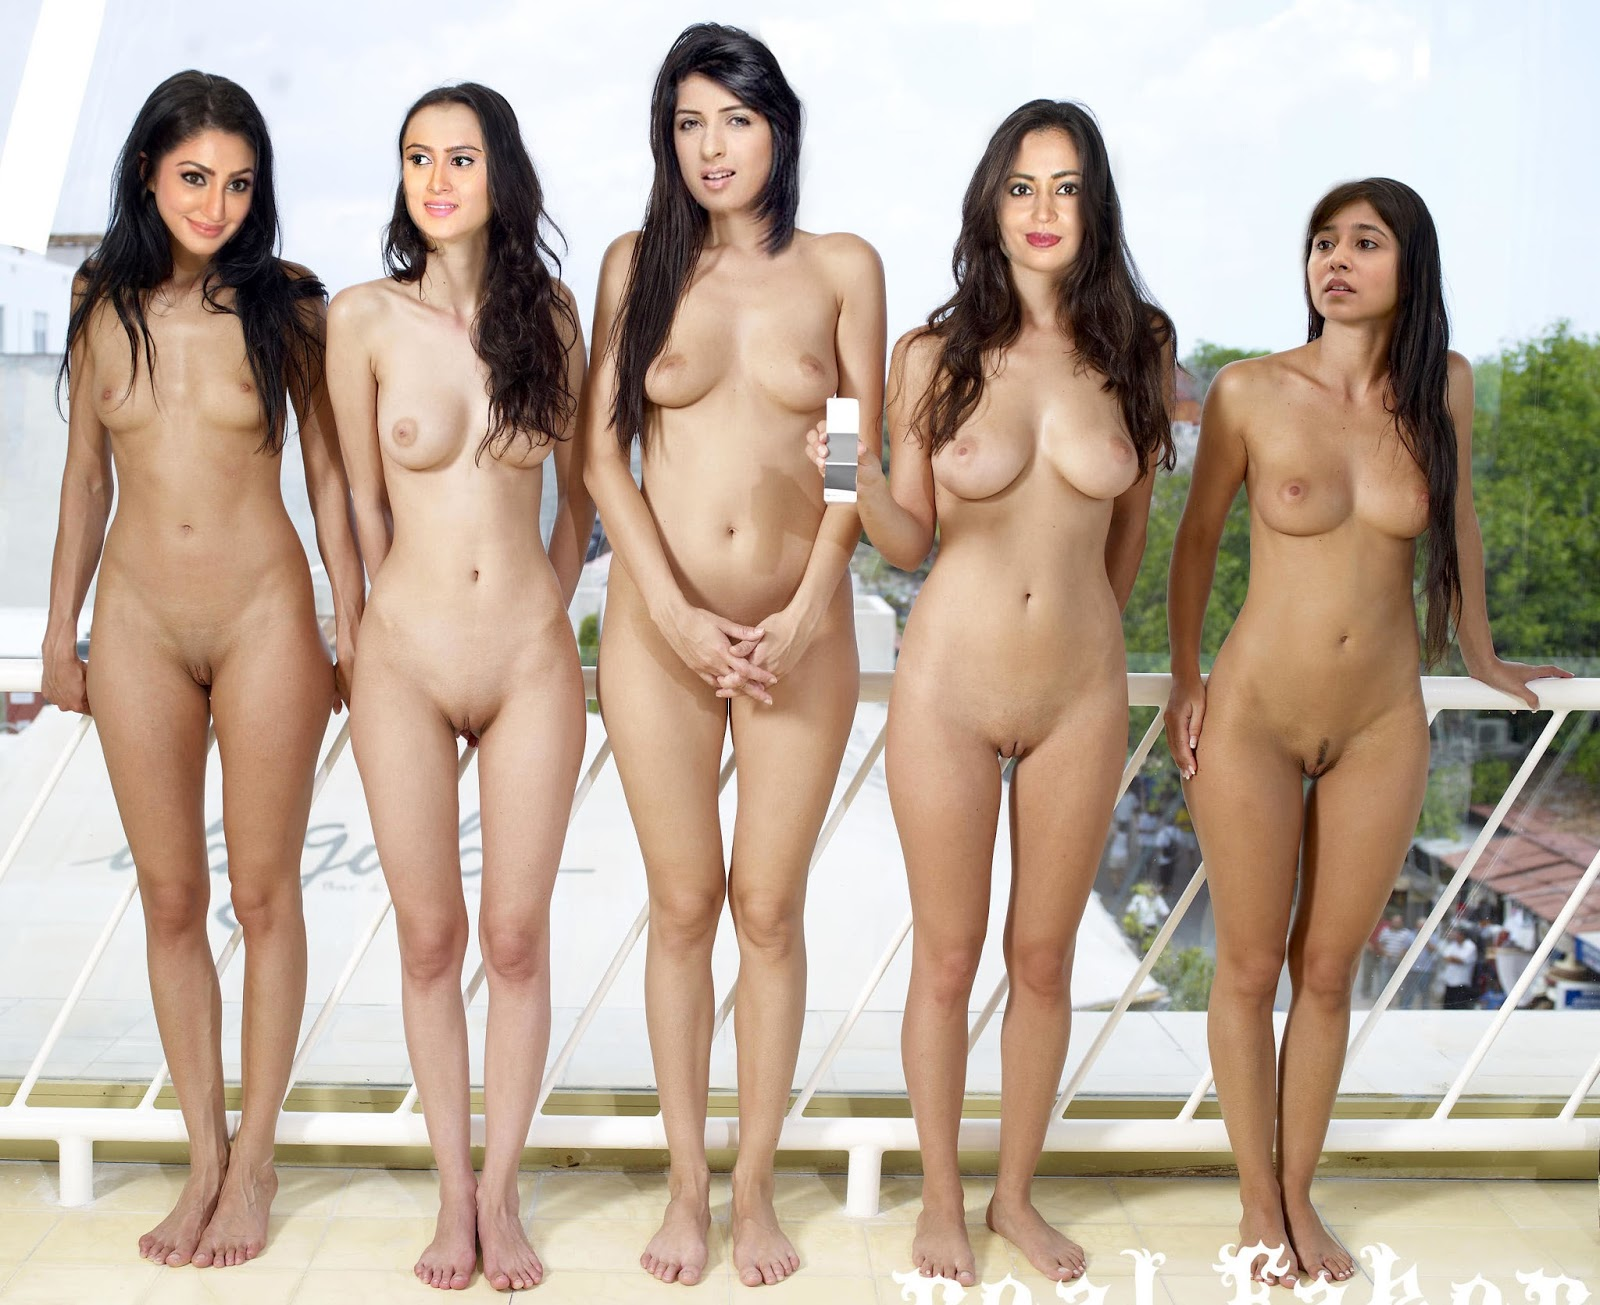 Bollywood actresses group nude photos, juicy young cunt